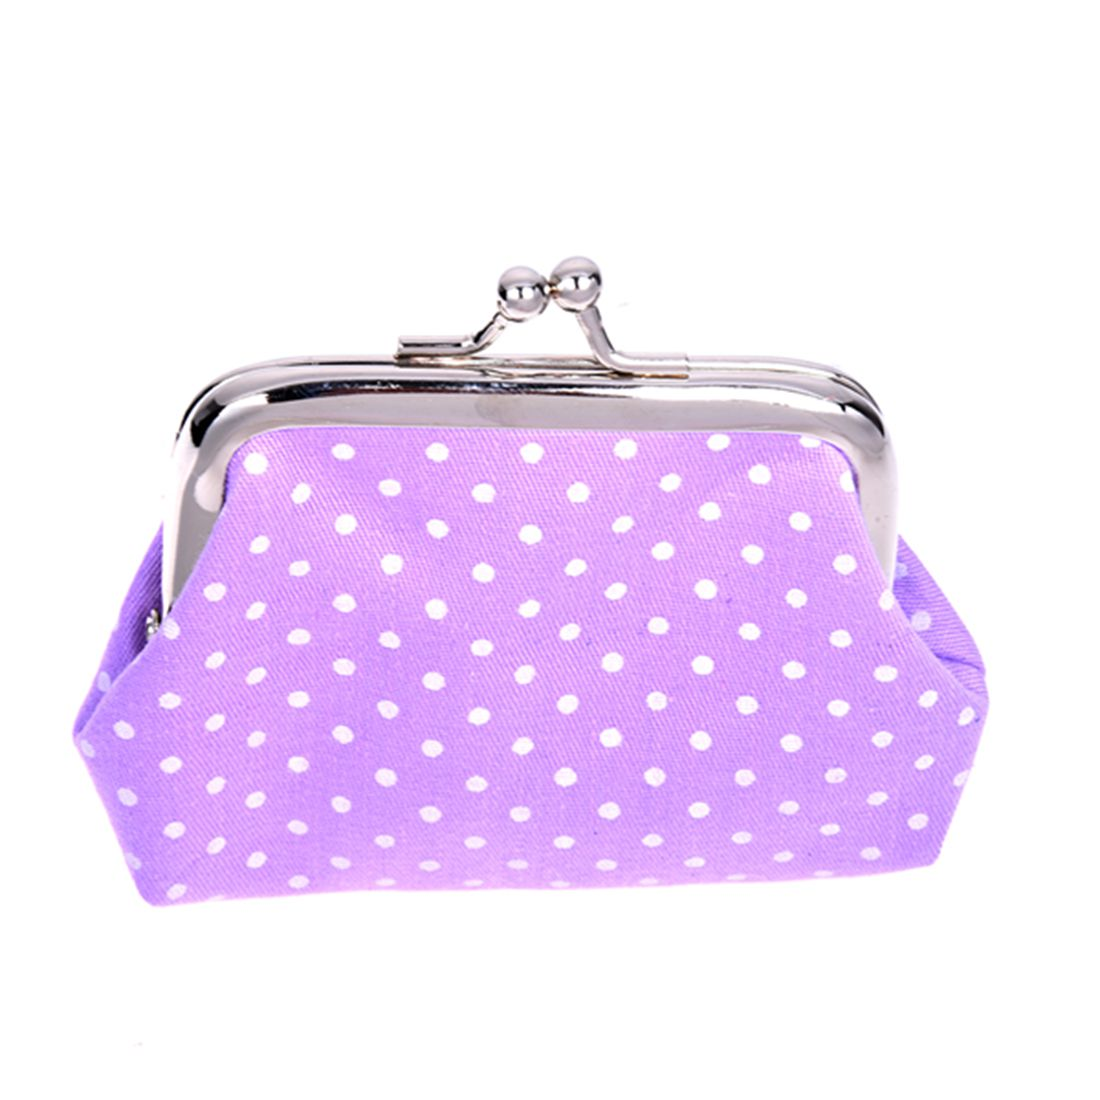 Popular Cute girls Wallet Clutch Change Purse key/coins bag Mini Handbag Pouch purple